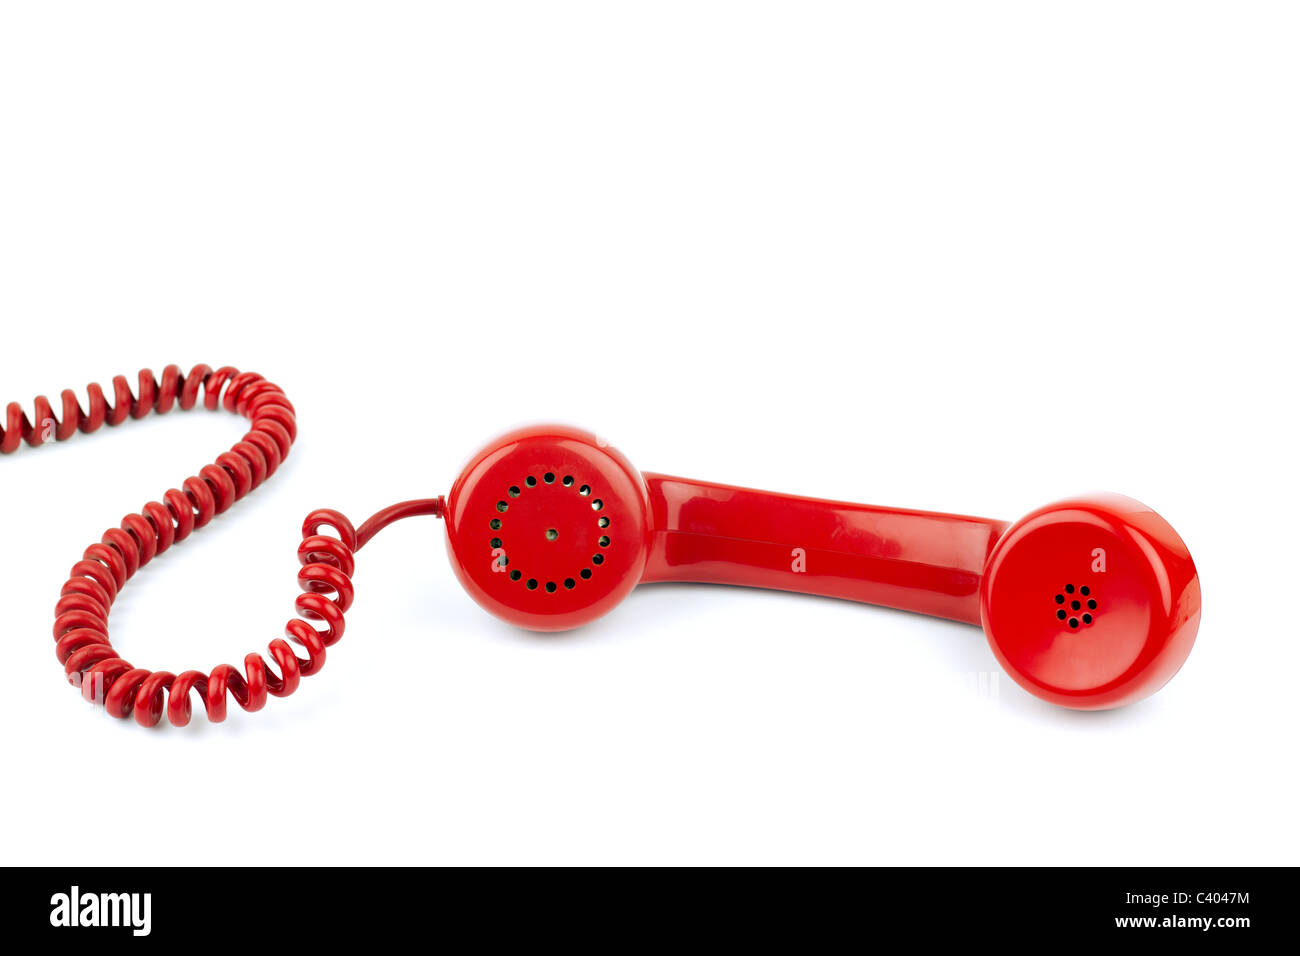 Telephone receiver and cord, isolated on white background - Stock Image